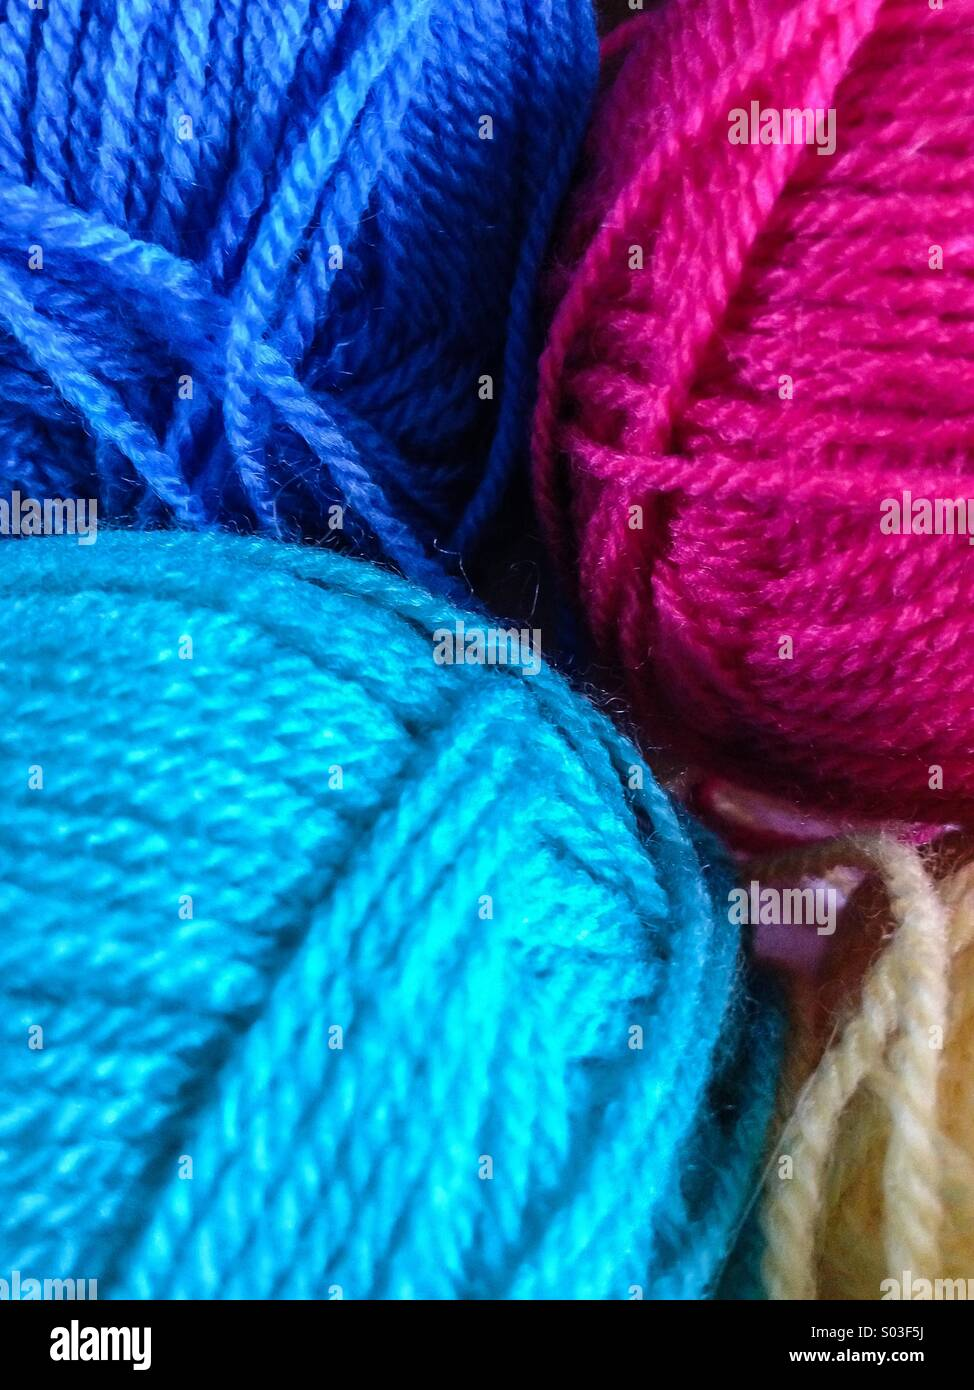 Colored skeins - Stock Image